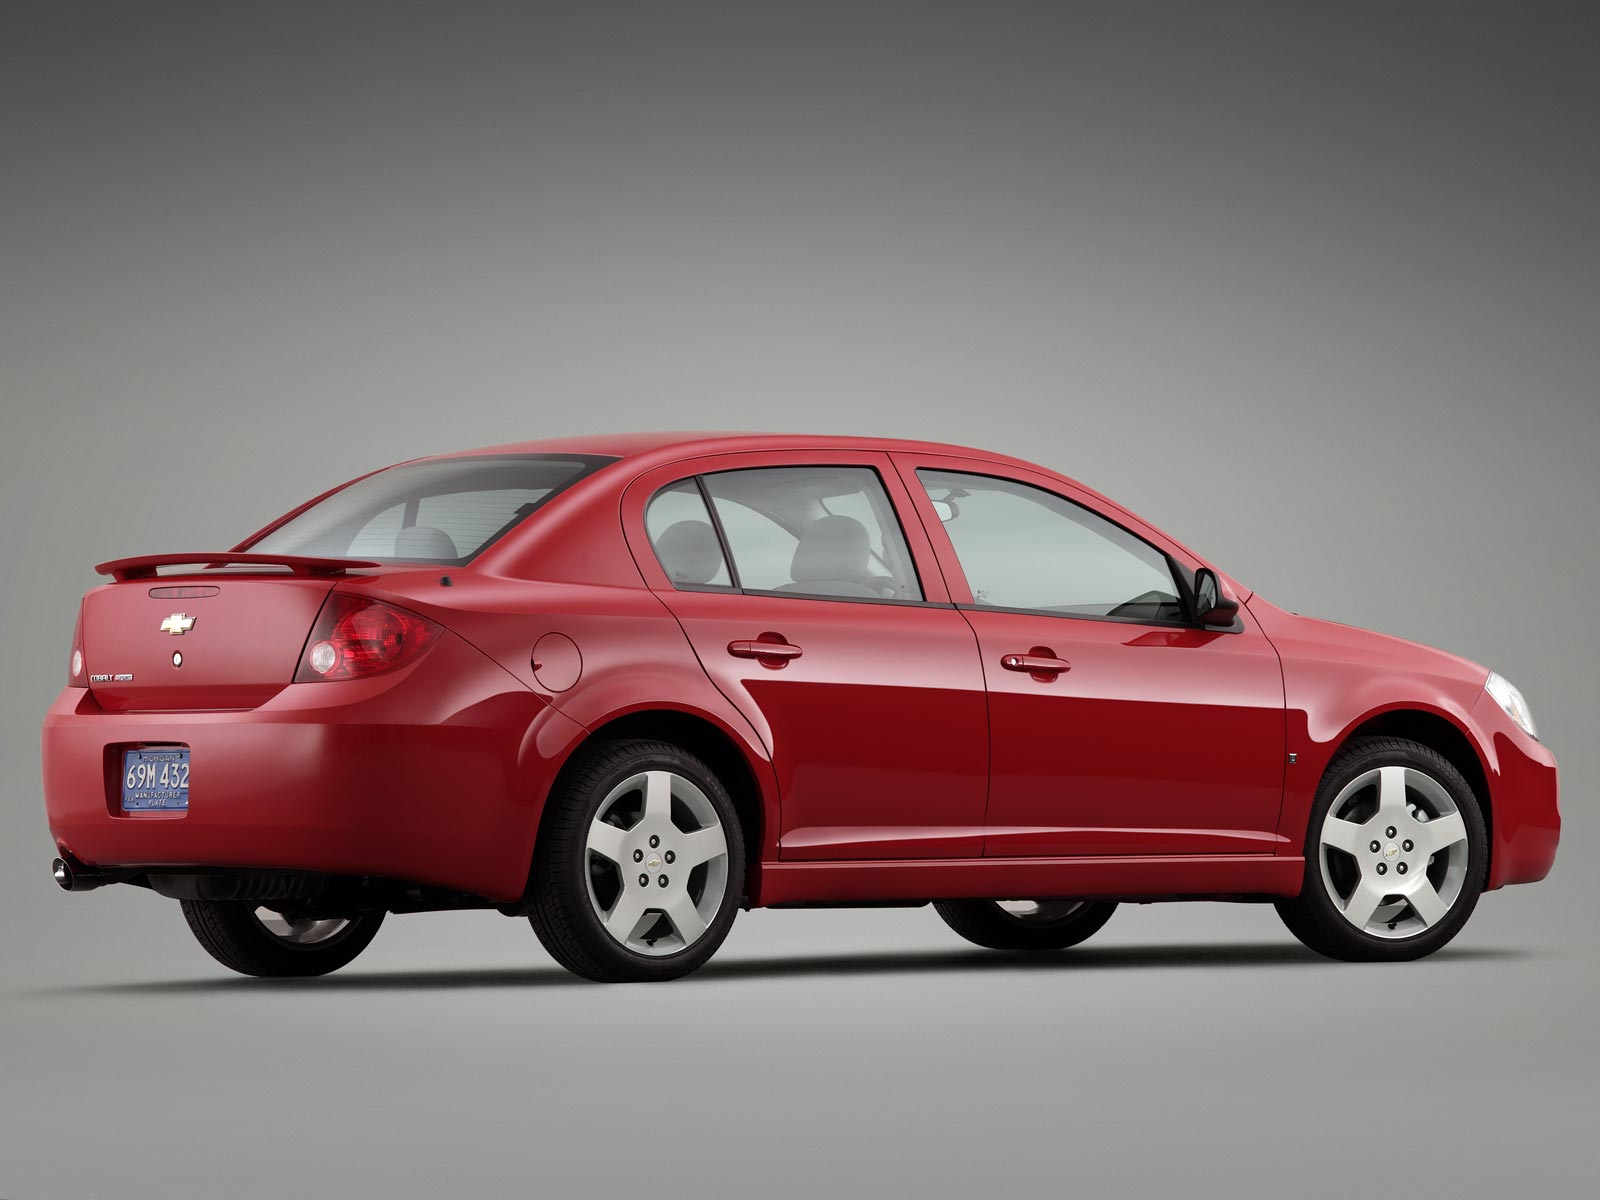 Chevrolet Cobalt 2.2 2005 photo - 2